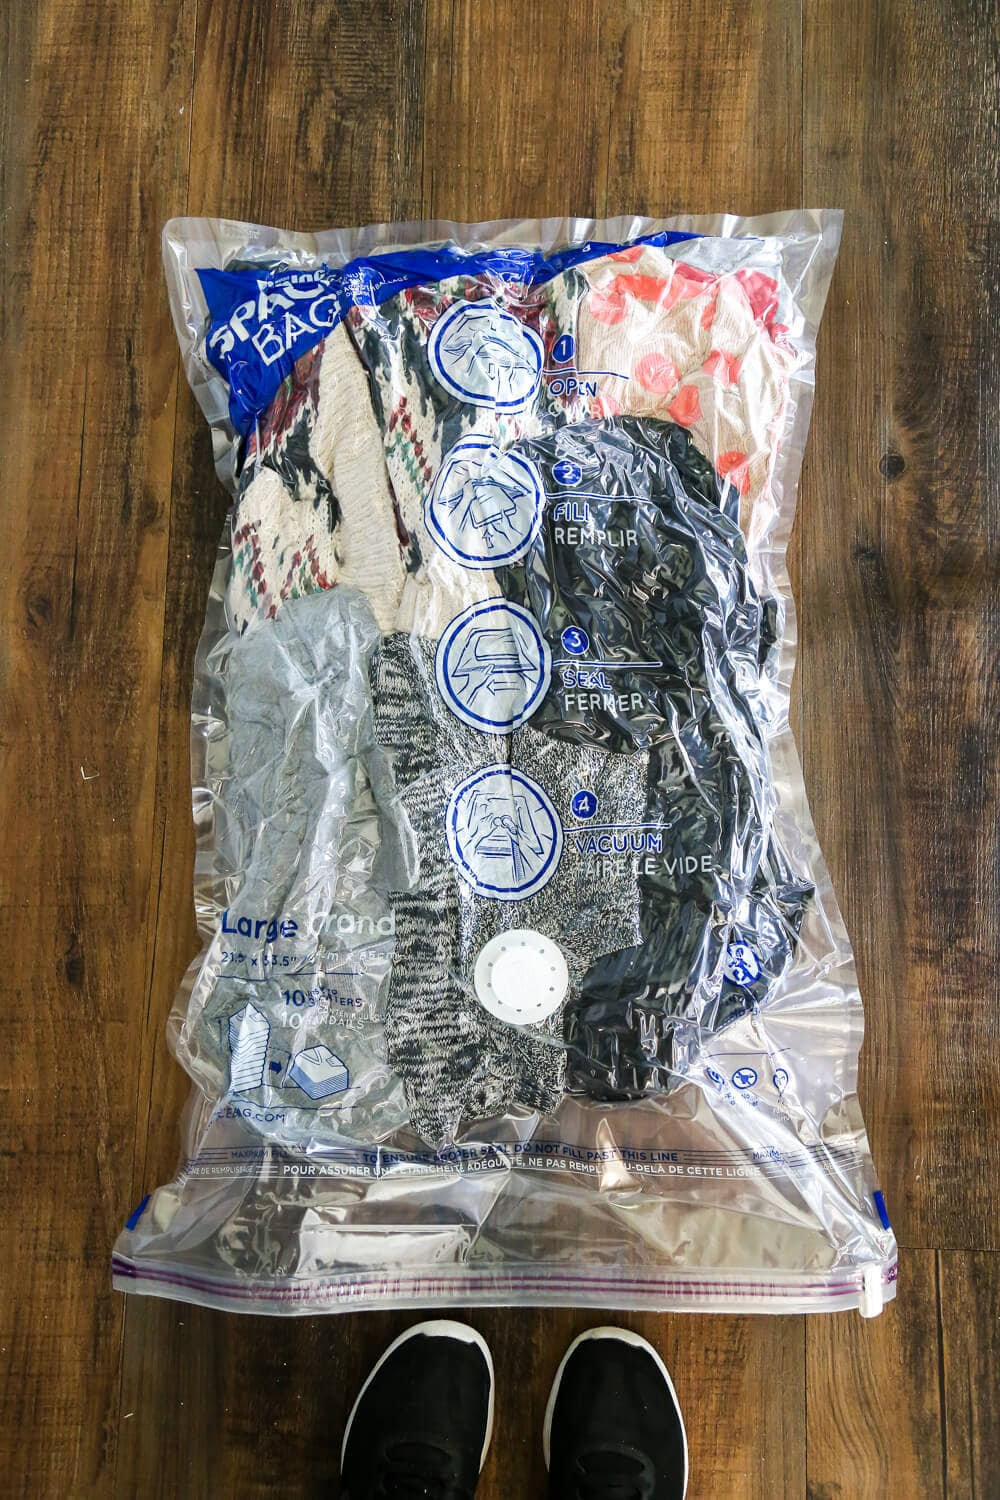 How to keep your linens and off-season clothing completely organized without wasting any space using Ziplock Space Bags! Great tips and ideas for getting your garage totally organized, too!